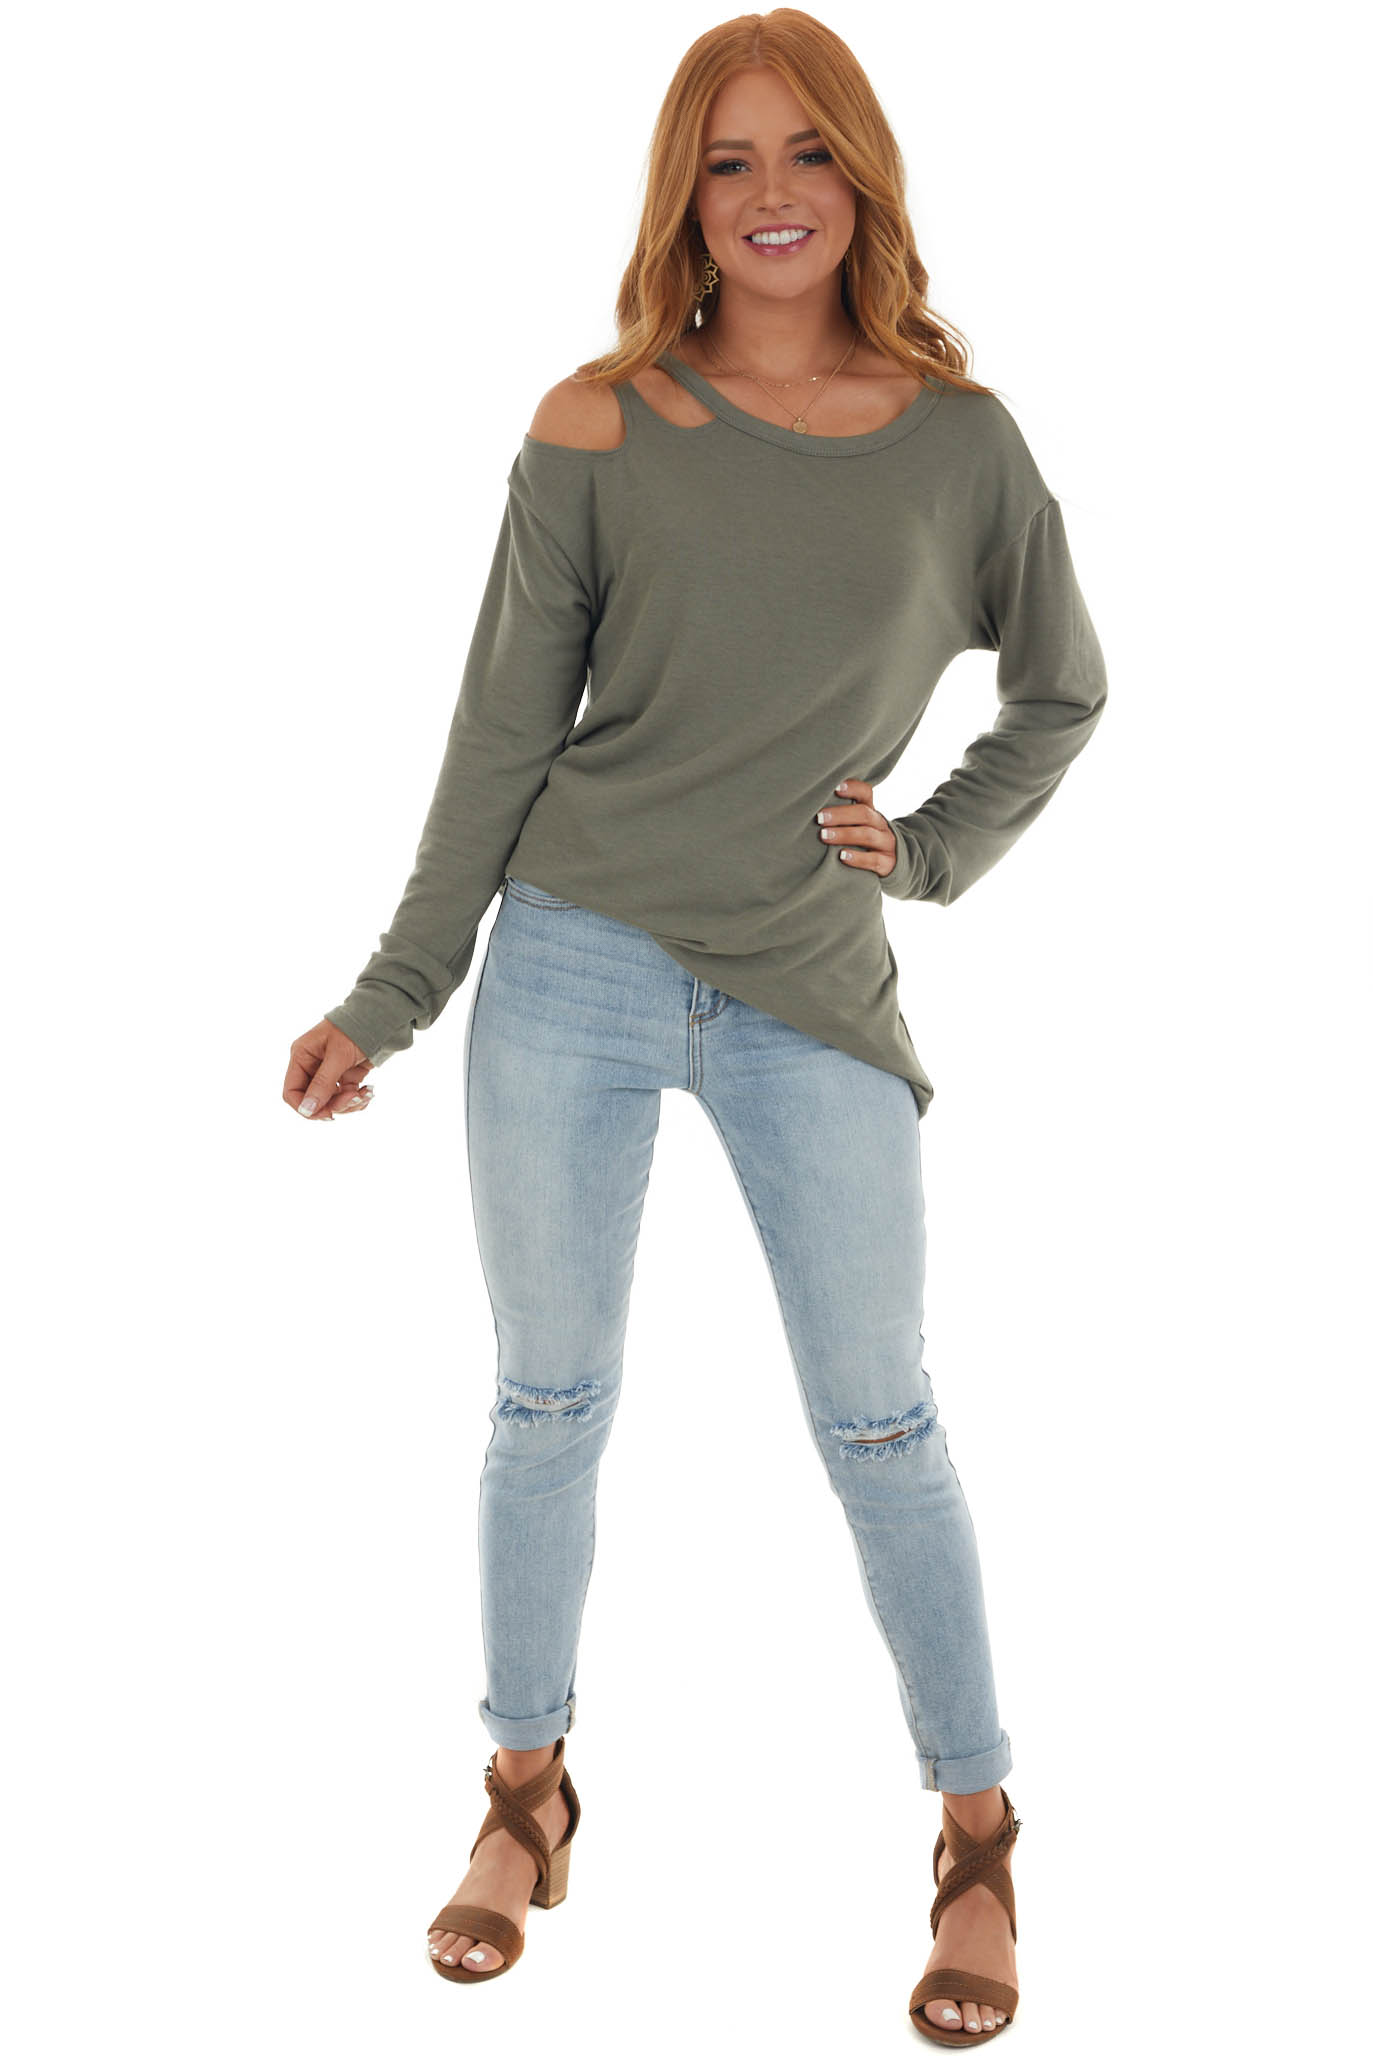 Olive Green Long Sleeve Top with Cold Shoulder Detail